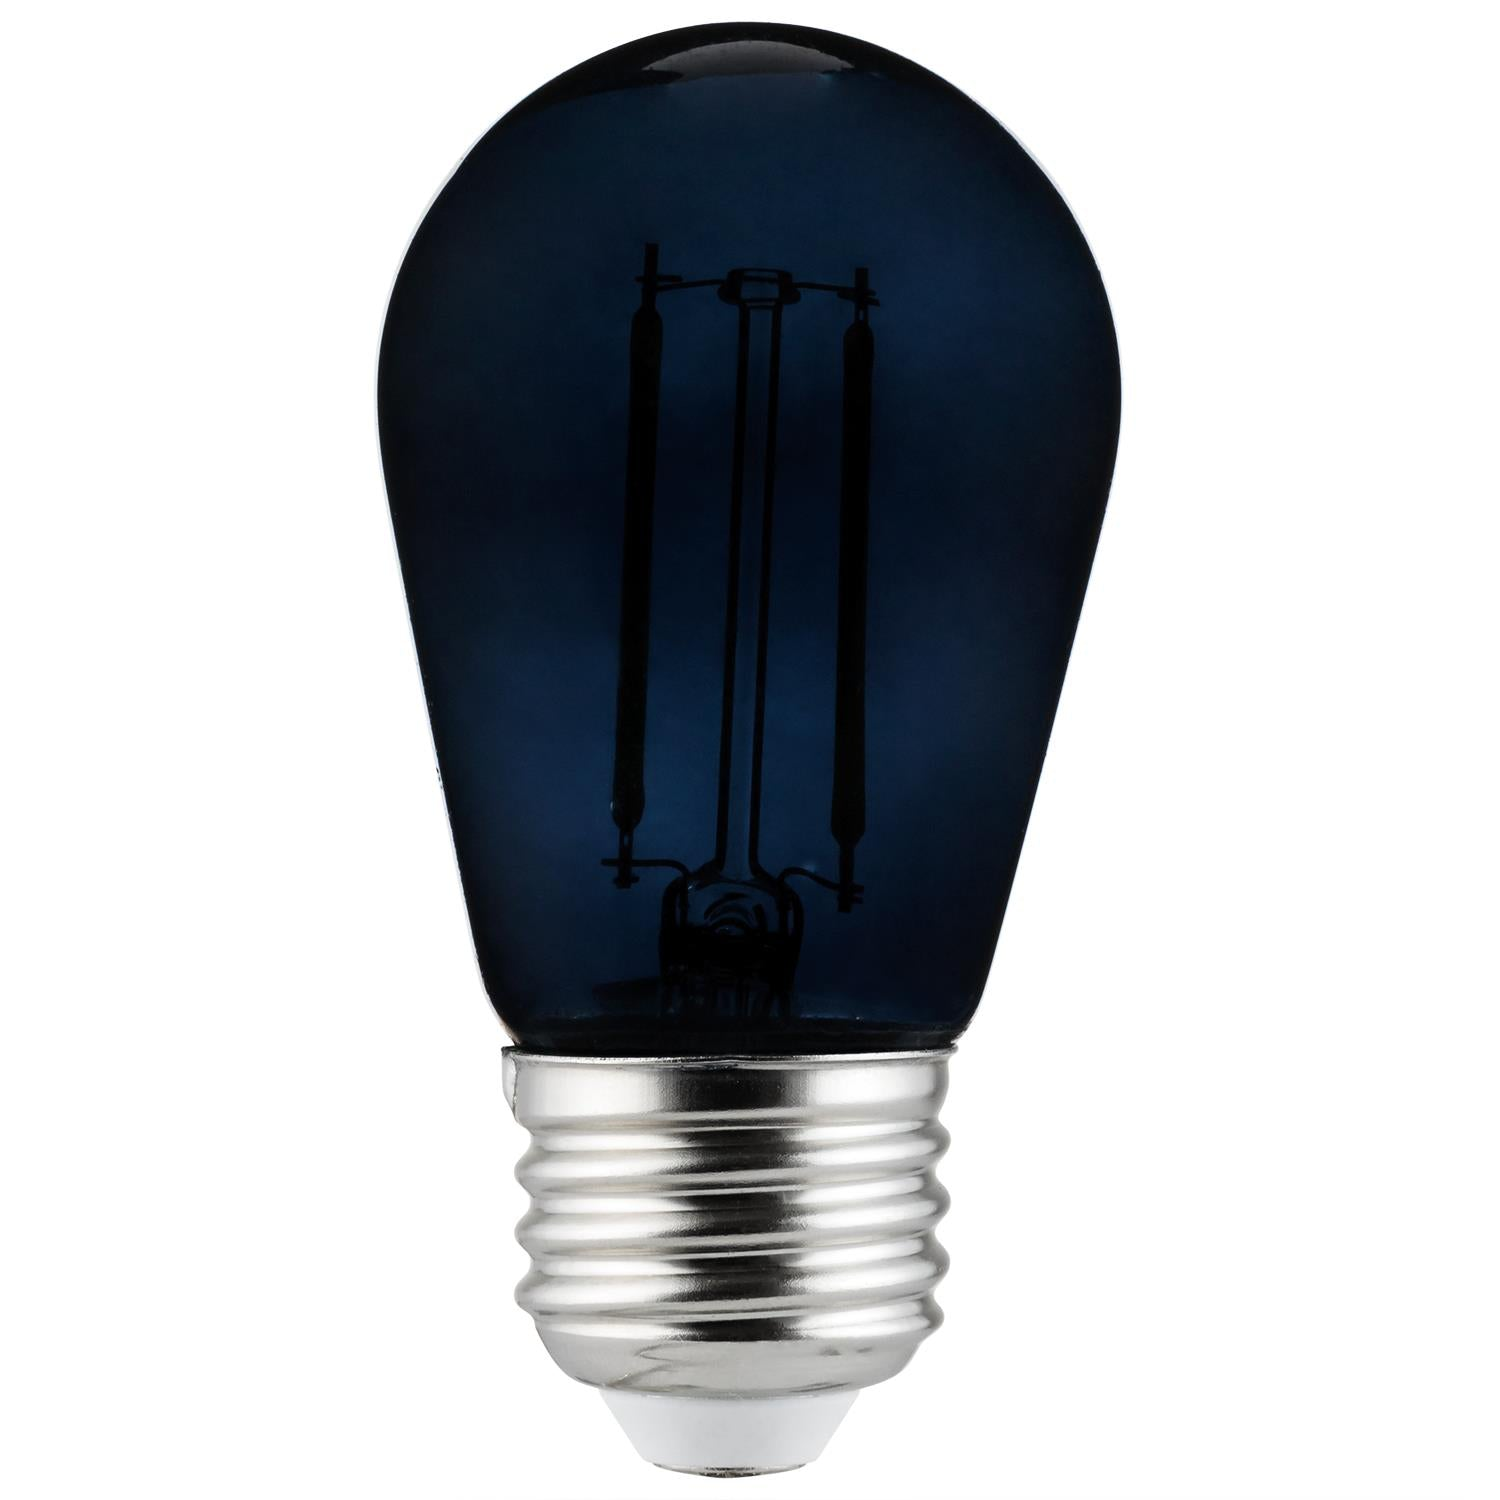 SUNLITE 2w LED Filament S14 Sign Transparent Black Colored Dimmable Bulb